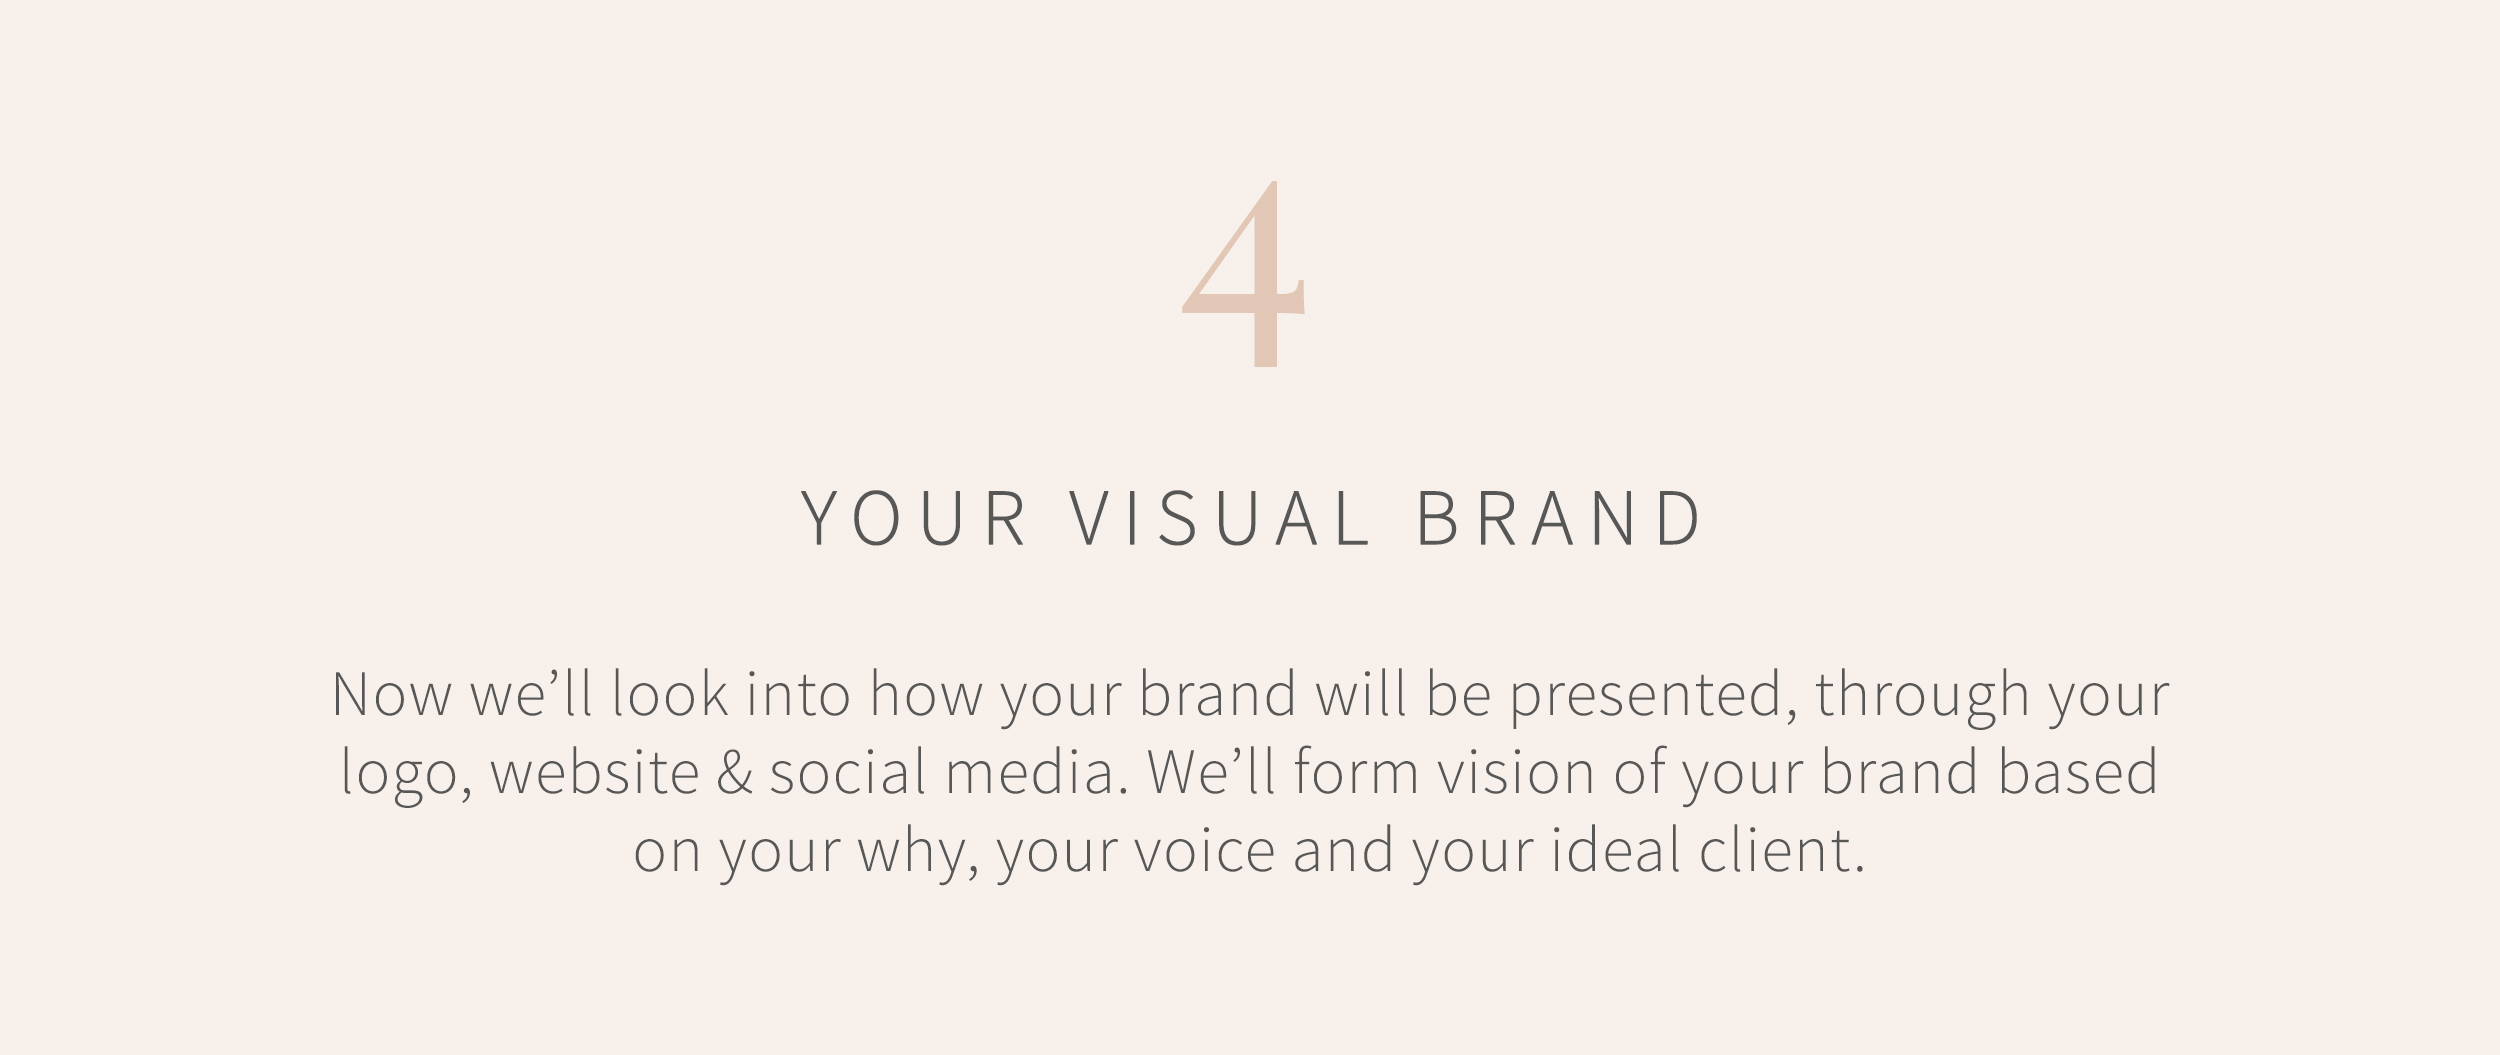 Your Visual Brand